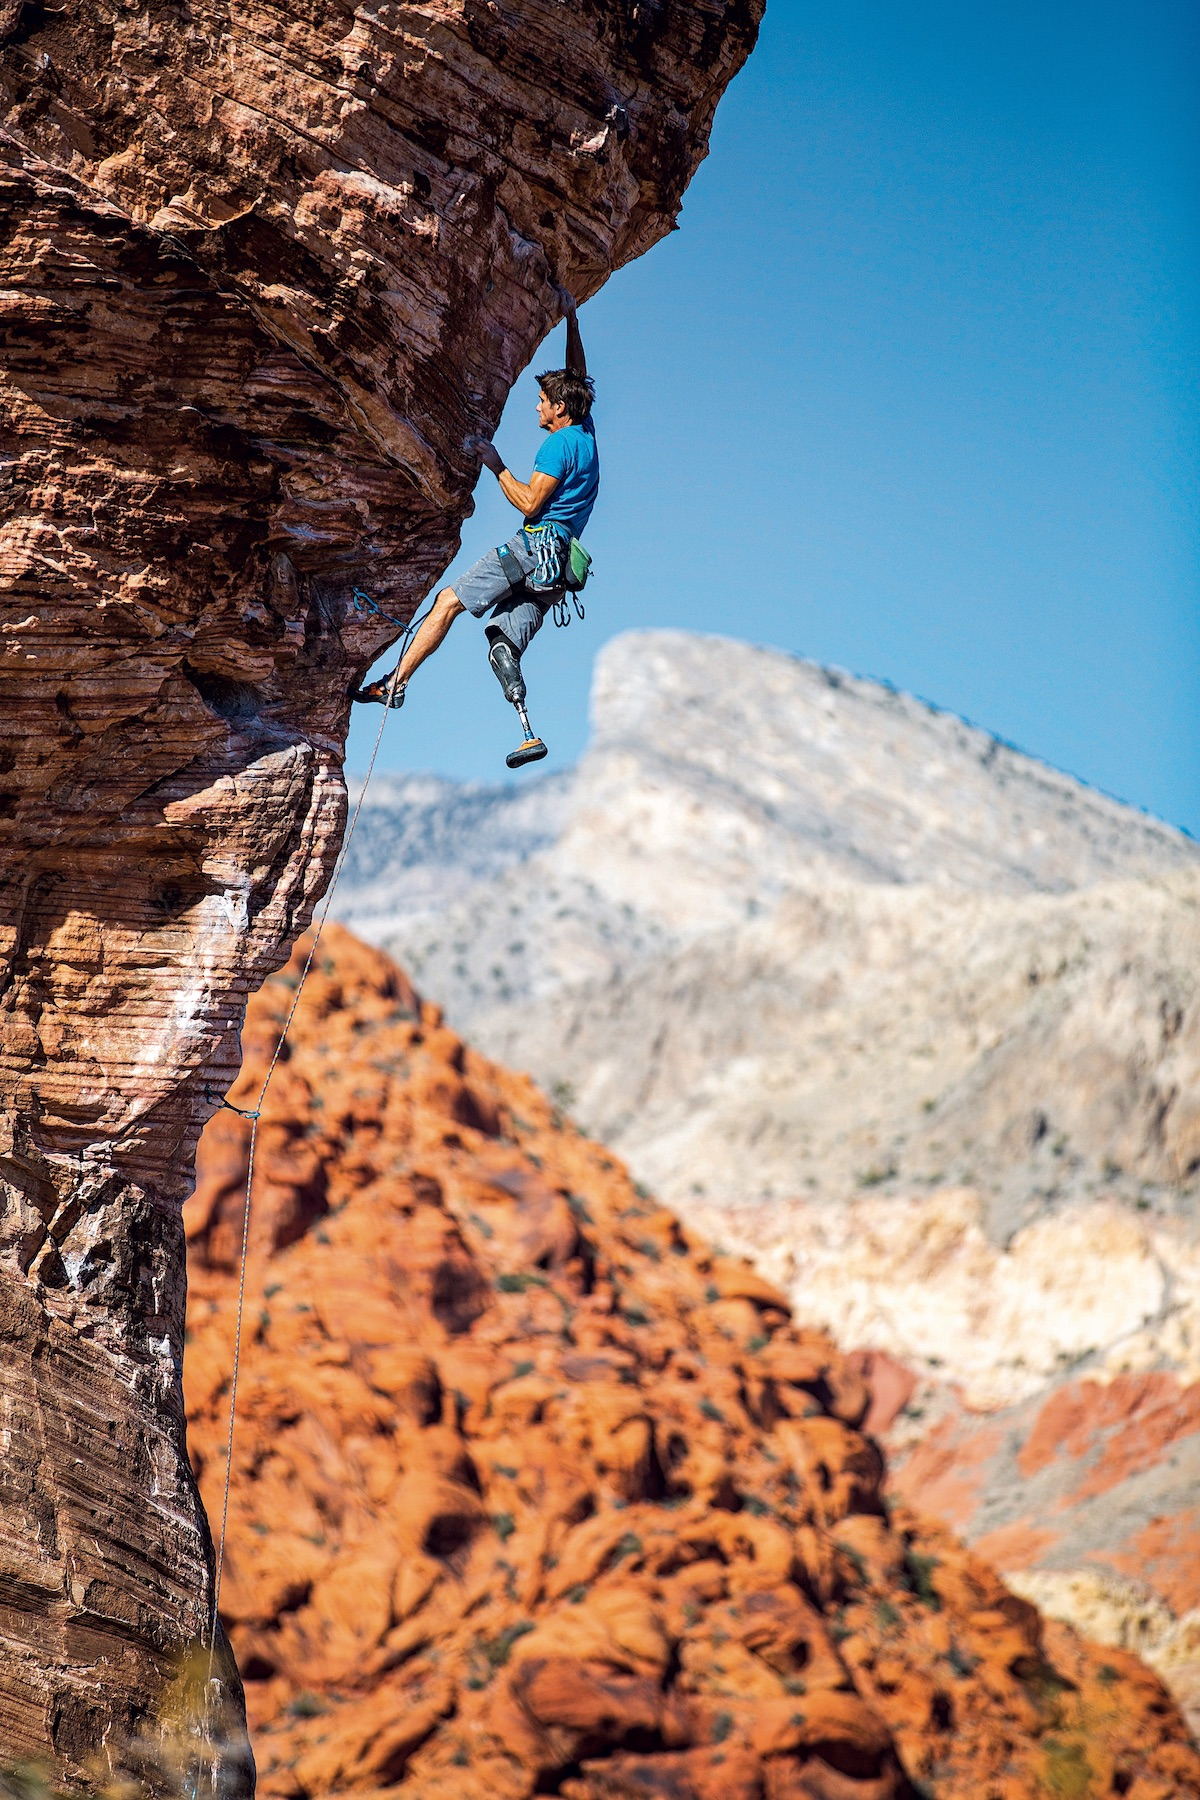 DeMartino leads Caustic (5.11b) in Red Rock Canyon National Recreation Area, Nevada. [Photo] Cameron Maier/Bearcam Media